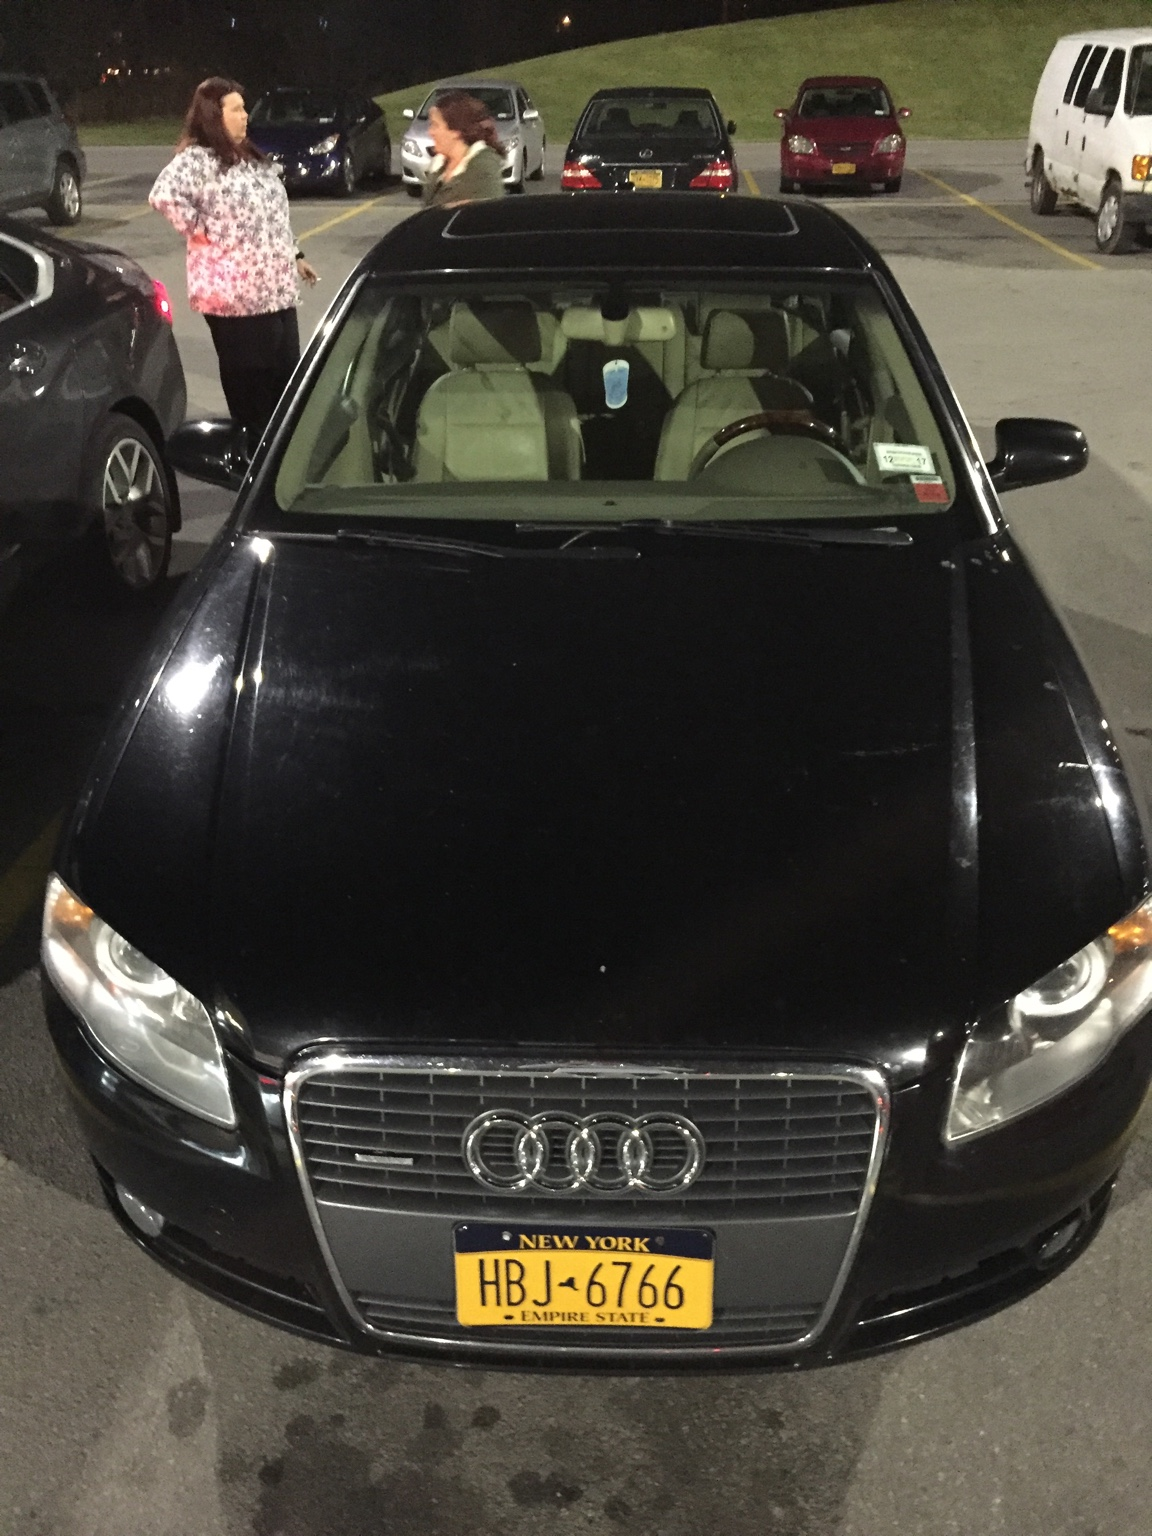 for sale 2006 audi a4 quattro engine needs work. Black Bedroom Furniture Sets. Home Design Ideas